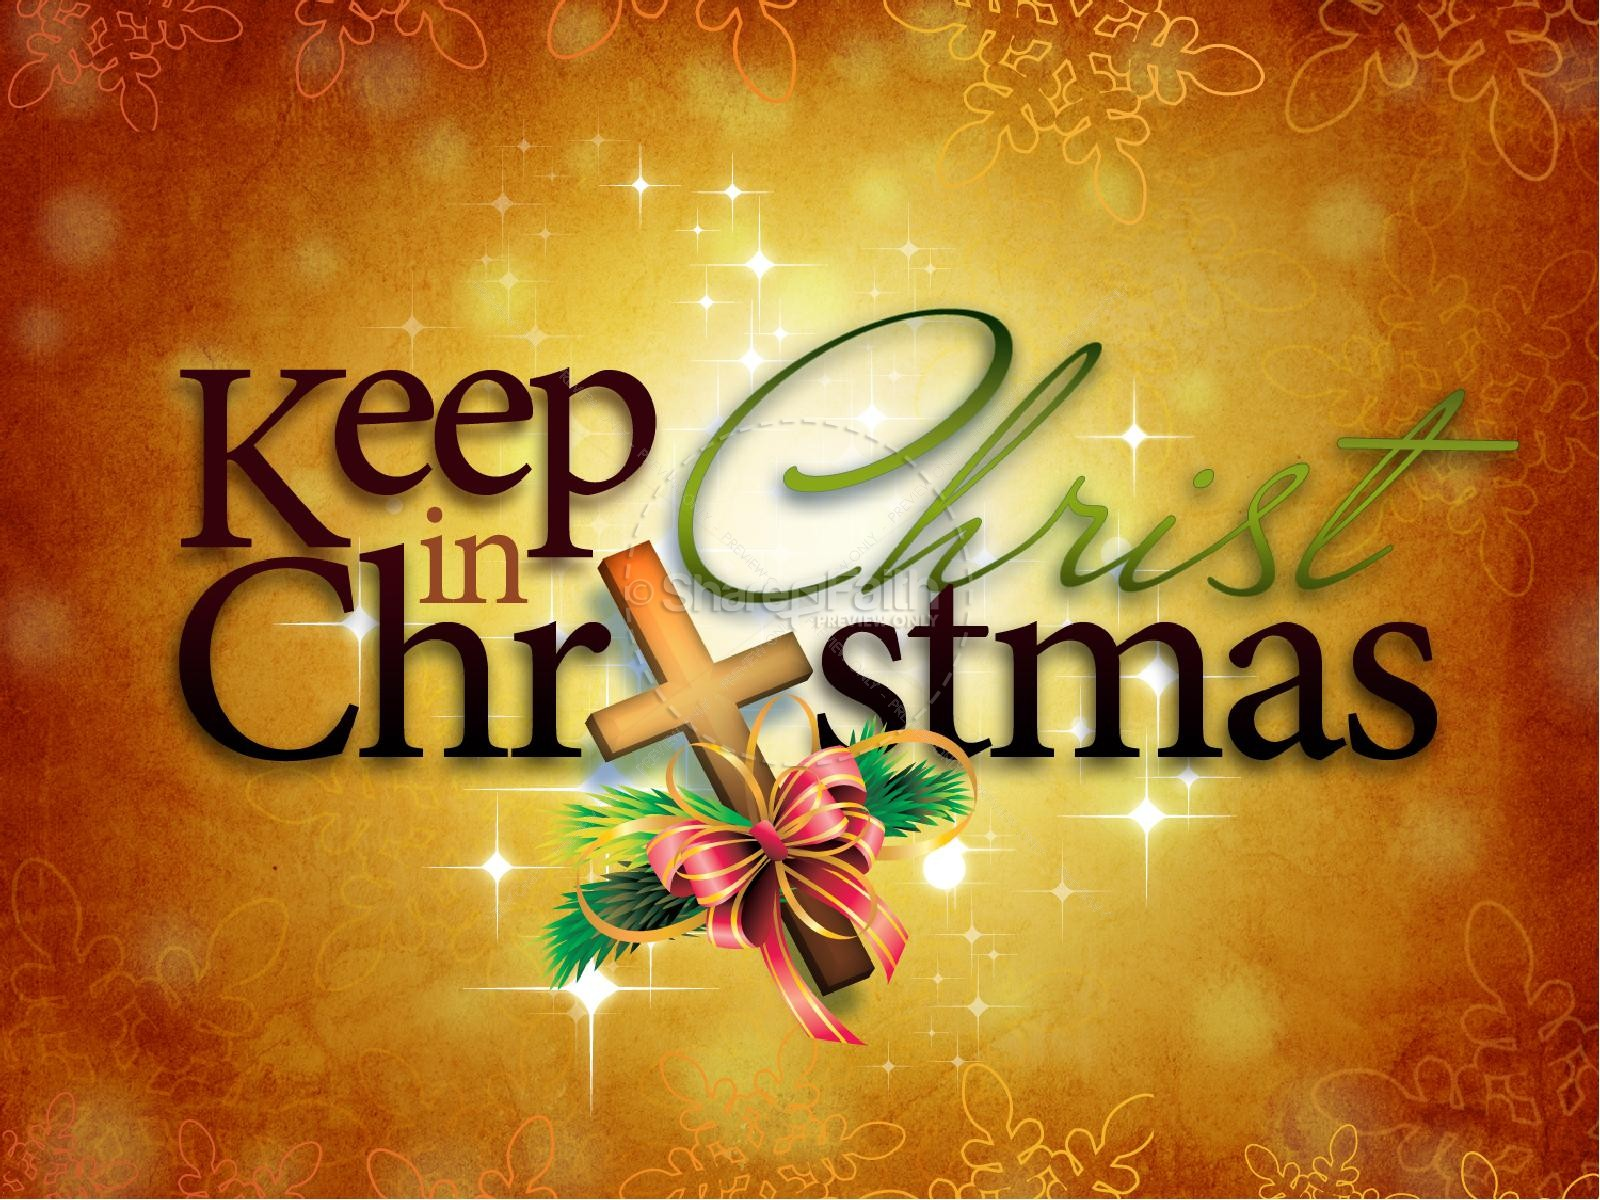 Keep christ in christmas clipart vector free download Christ in Christmas PowerPoint Template | Christmas PowerPoints vector free download